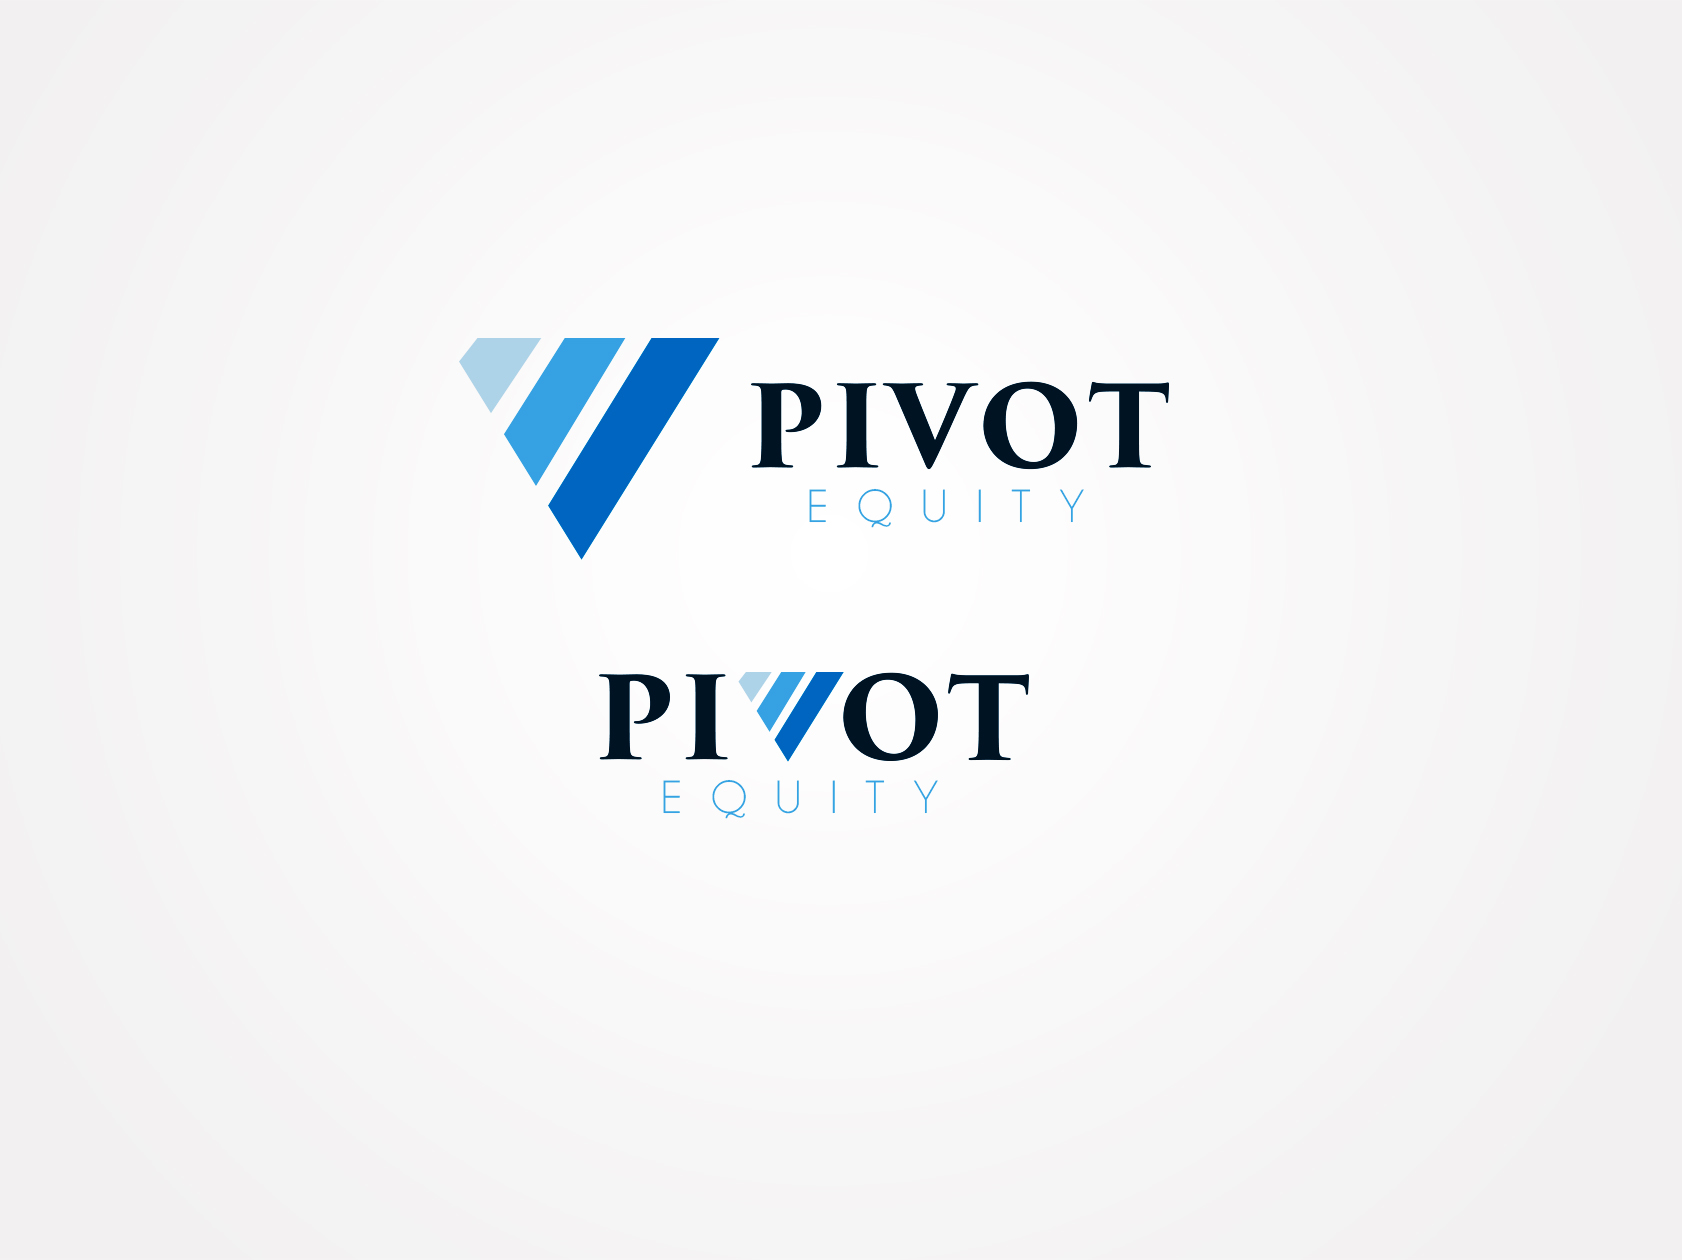 Logo Design by OmegaDesigns - Entry No. 86 in the Logo Design Contest Unique Logo Design Wanted for Pivot Equity Advisors.